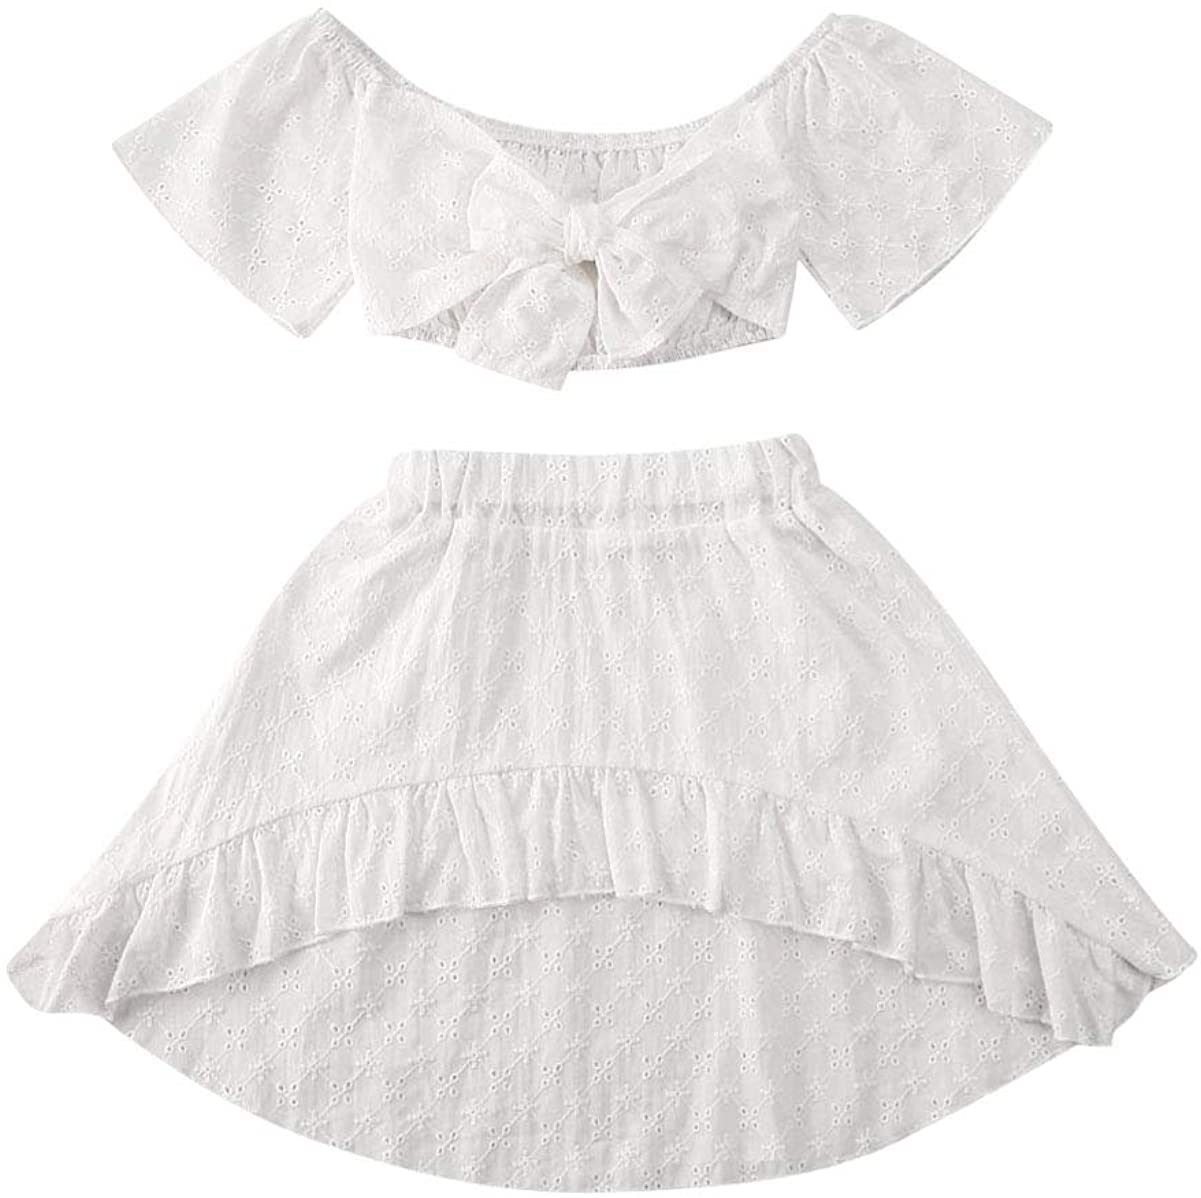 Baby Girls White 2PCS Outfits Bowknot Off Shoulder Tops Mini Skirt Dresses Summer Clothes Set